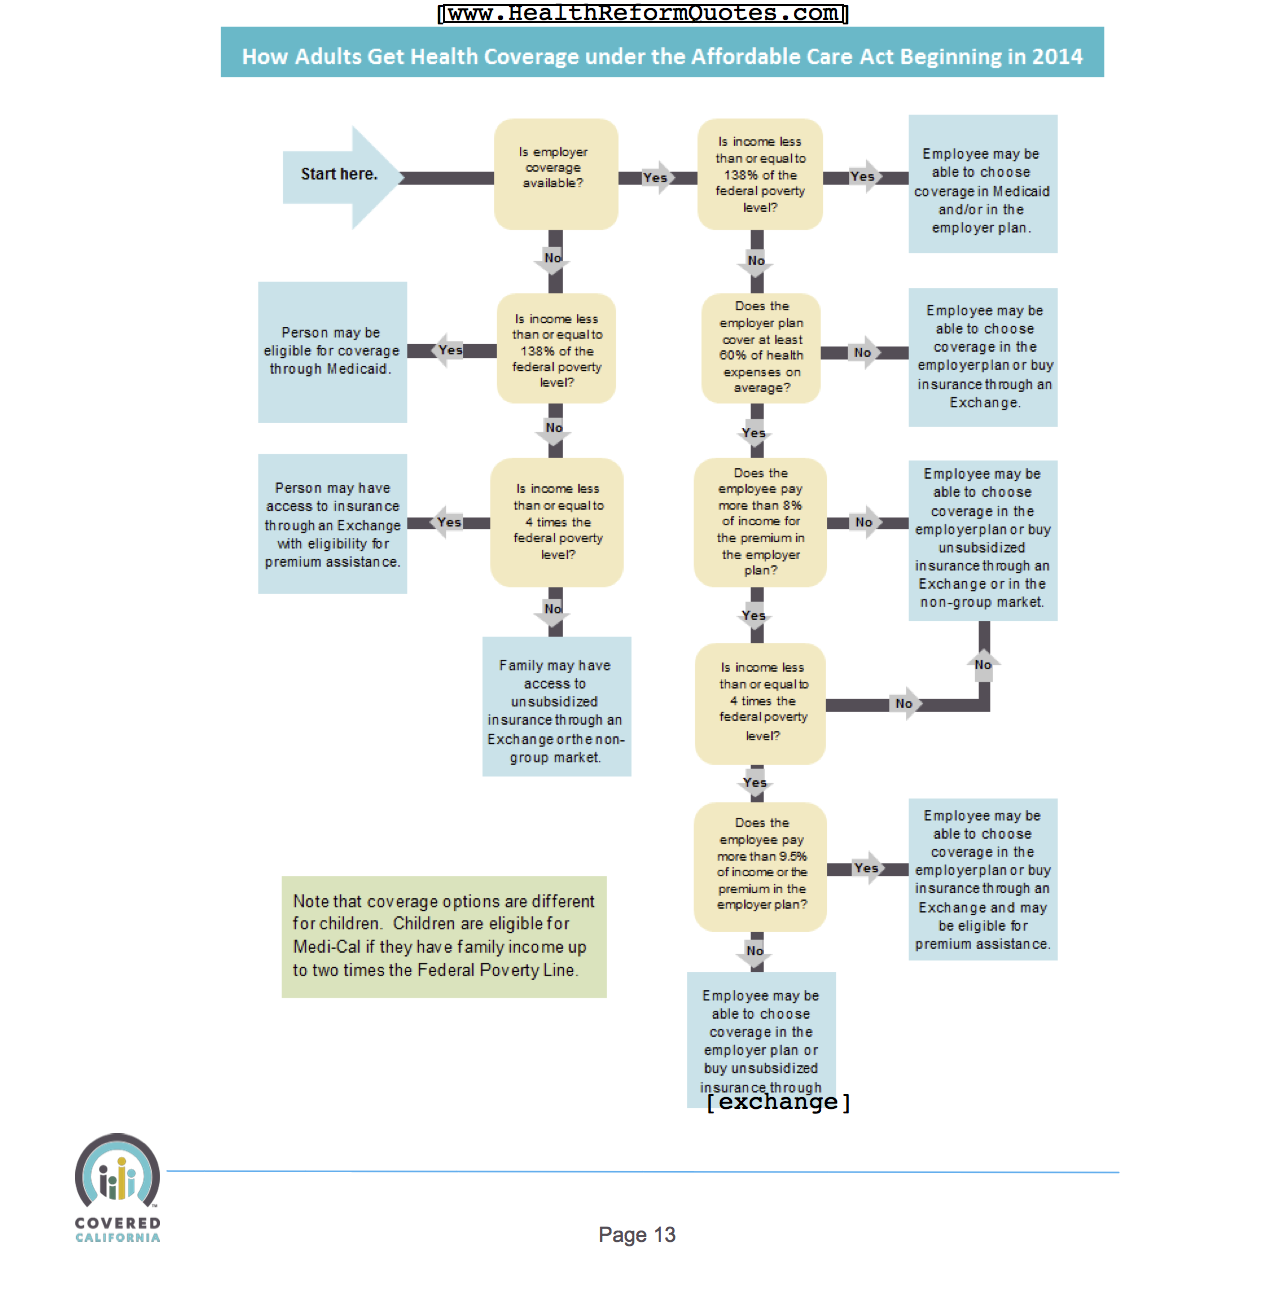 Aca Flow Chart For When And How To Get Health Insurance Coverage